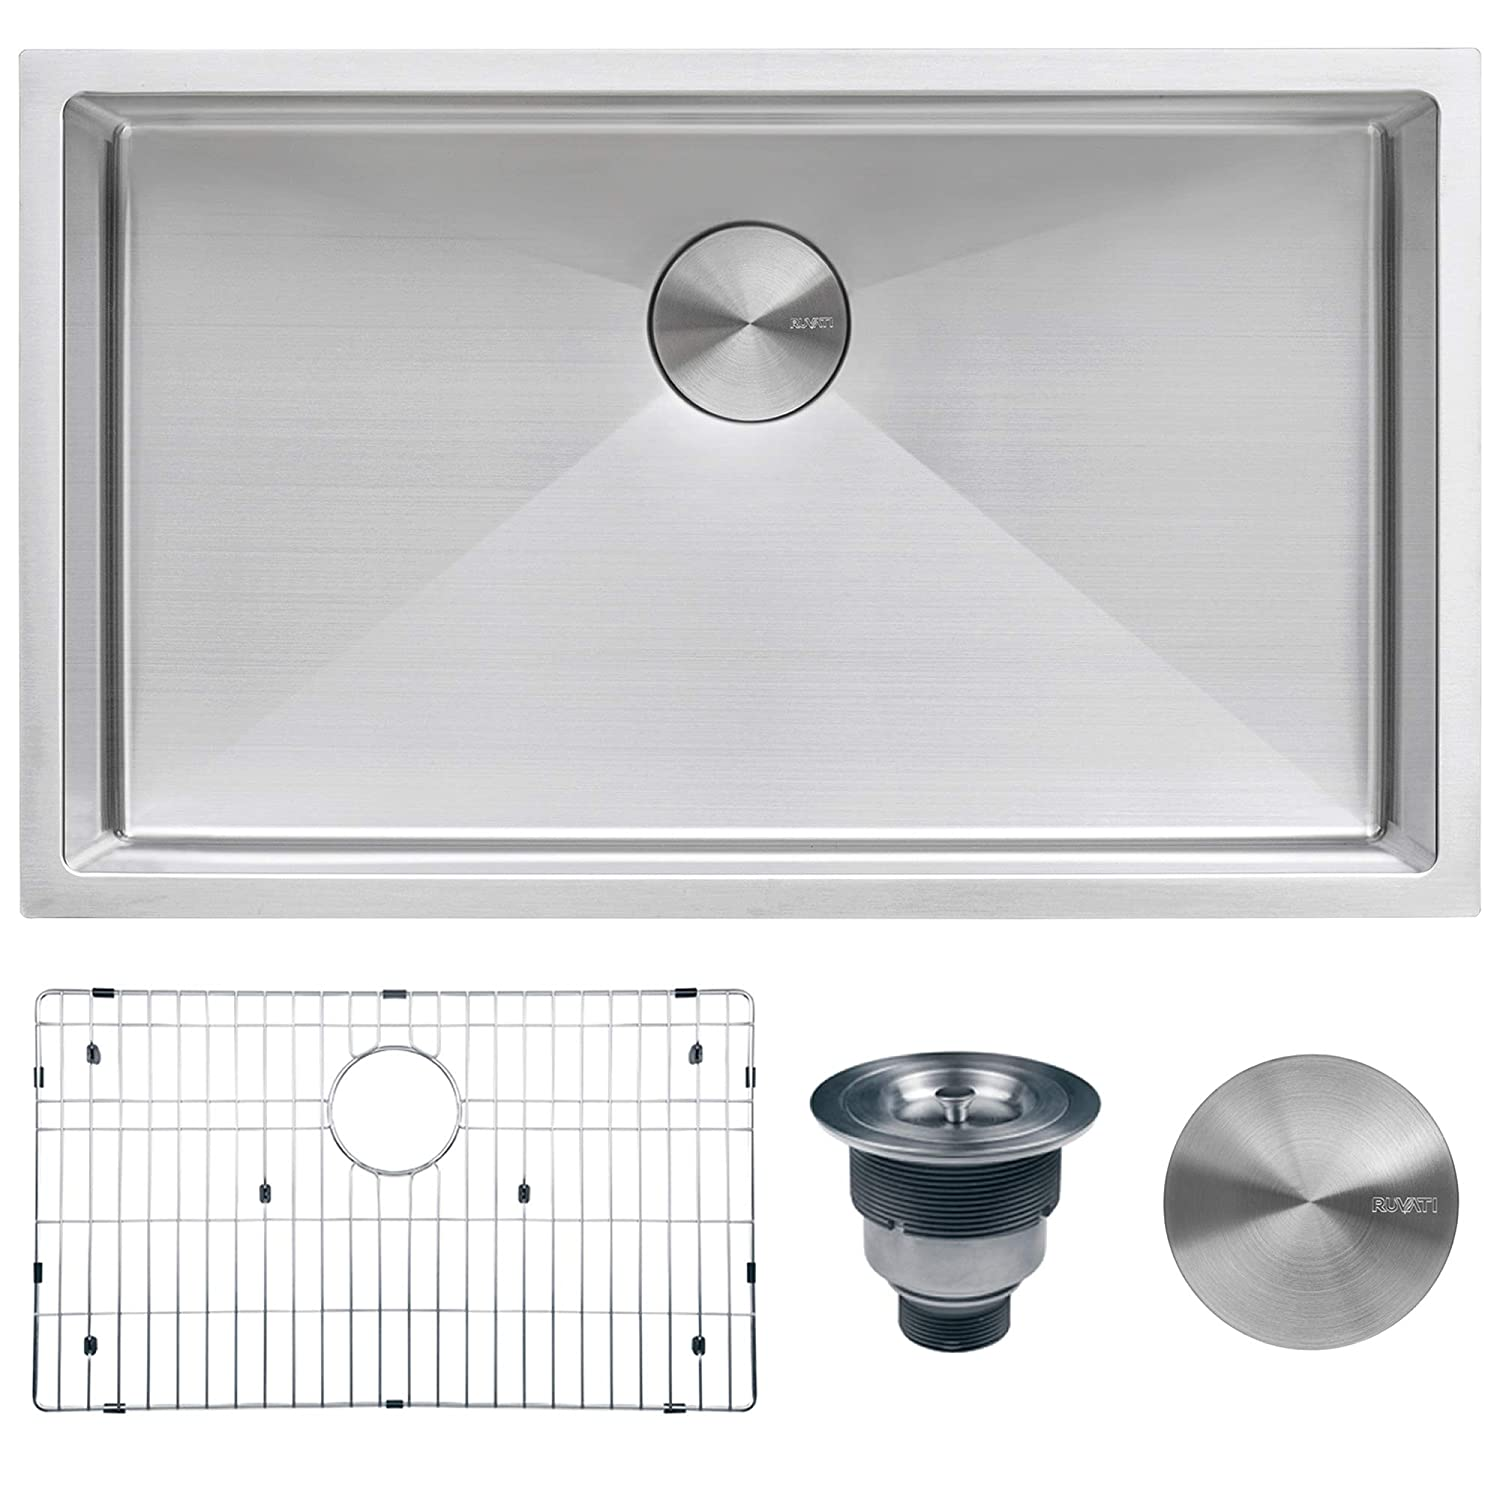 Ruvati 32-inch Undermount 16 Gauge Tight Radius Kitchen Sink Stainless Steel Single Bowl RVH7400